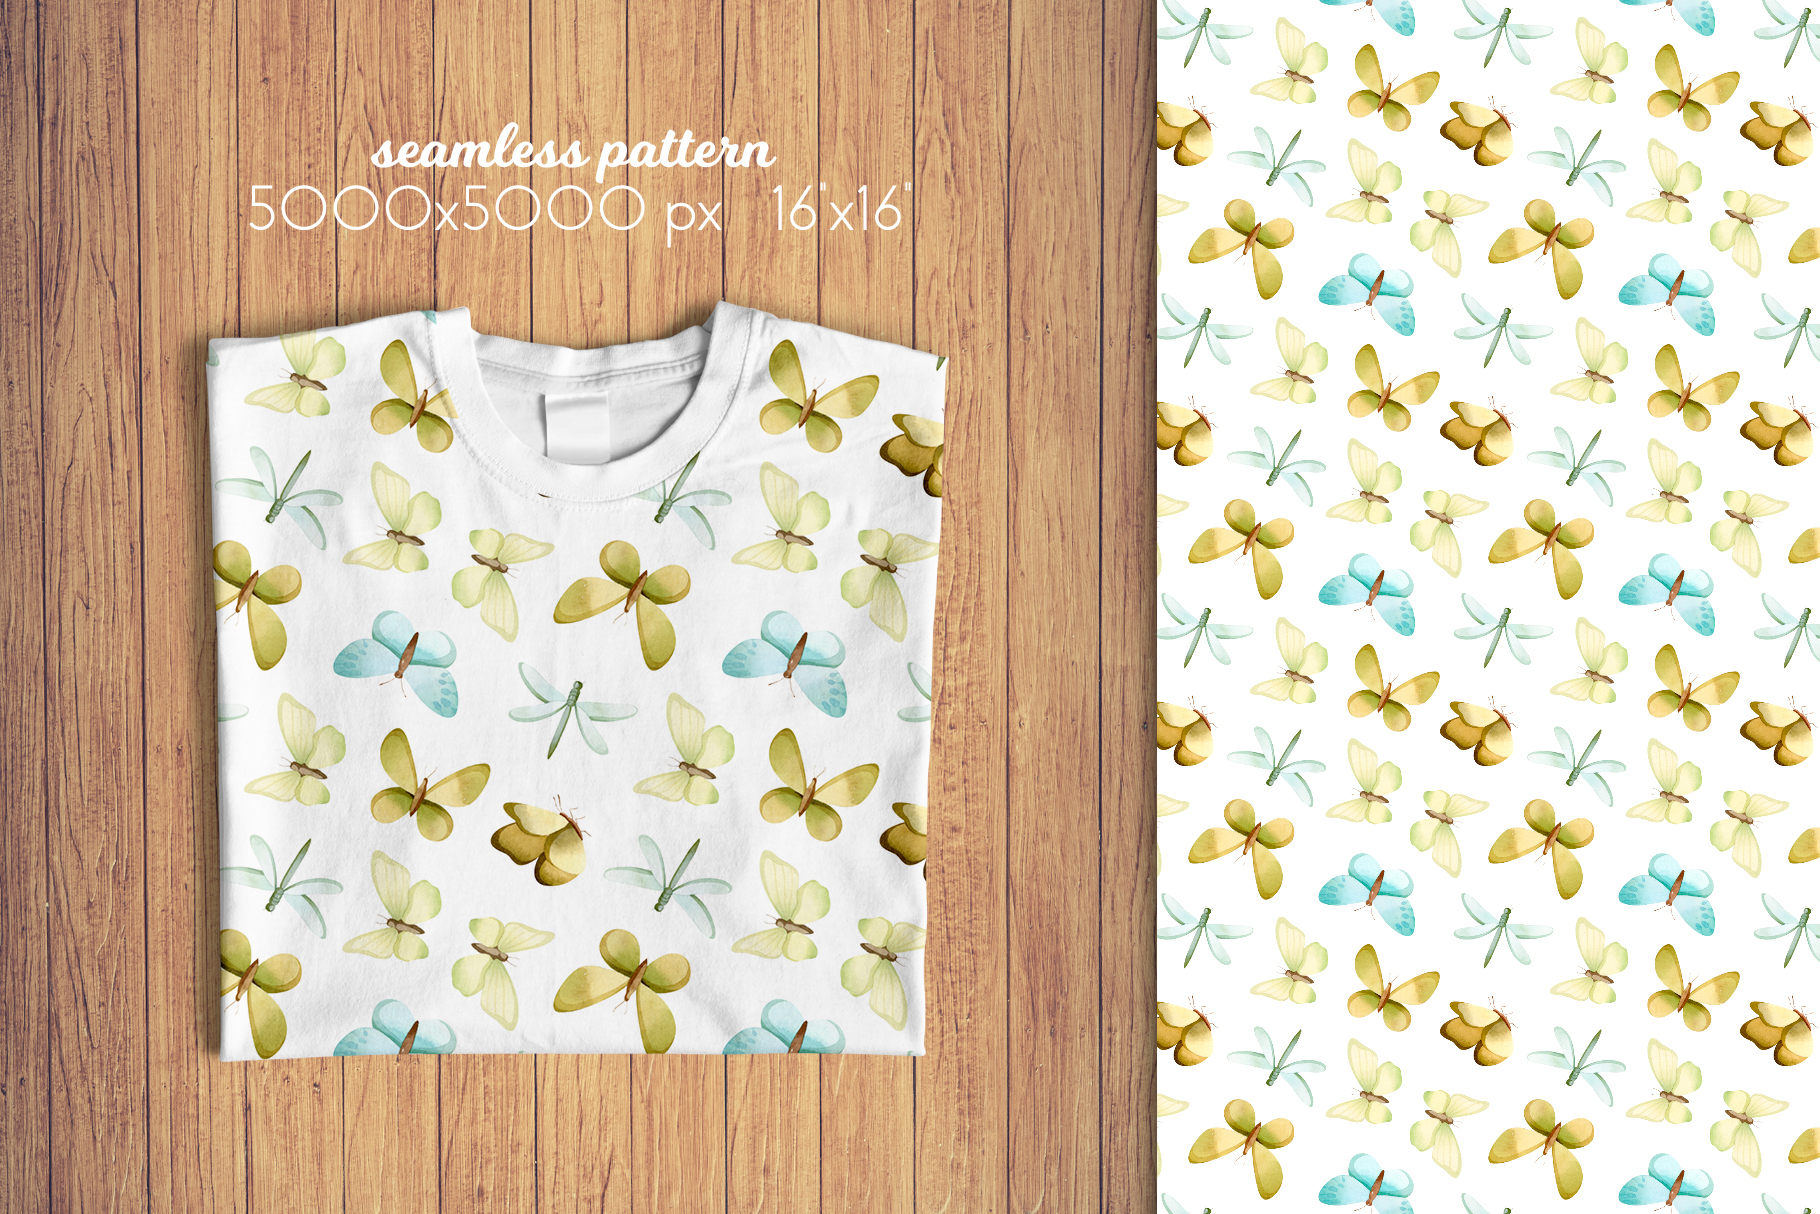 Butterflies and Dragonflies Patterns Collection example image 8